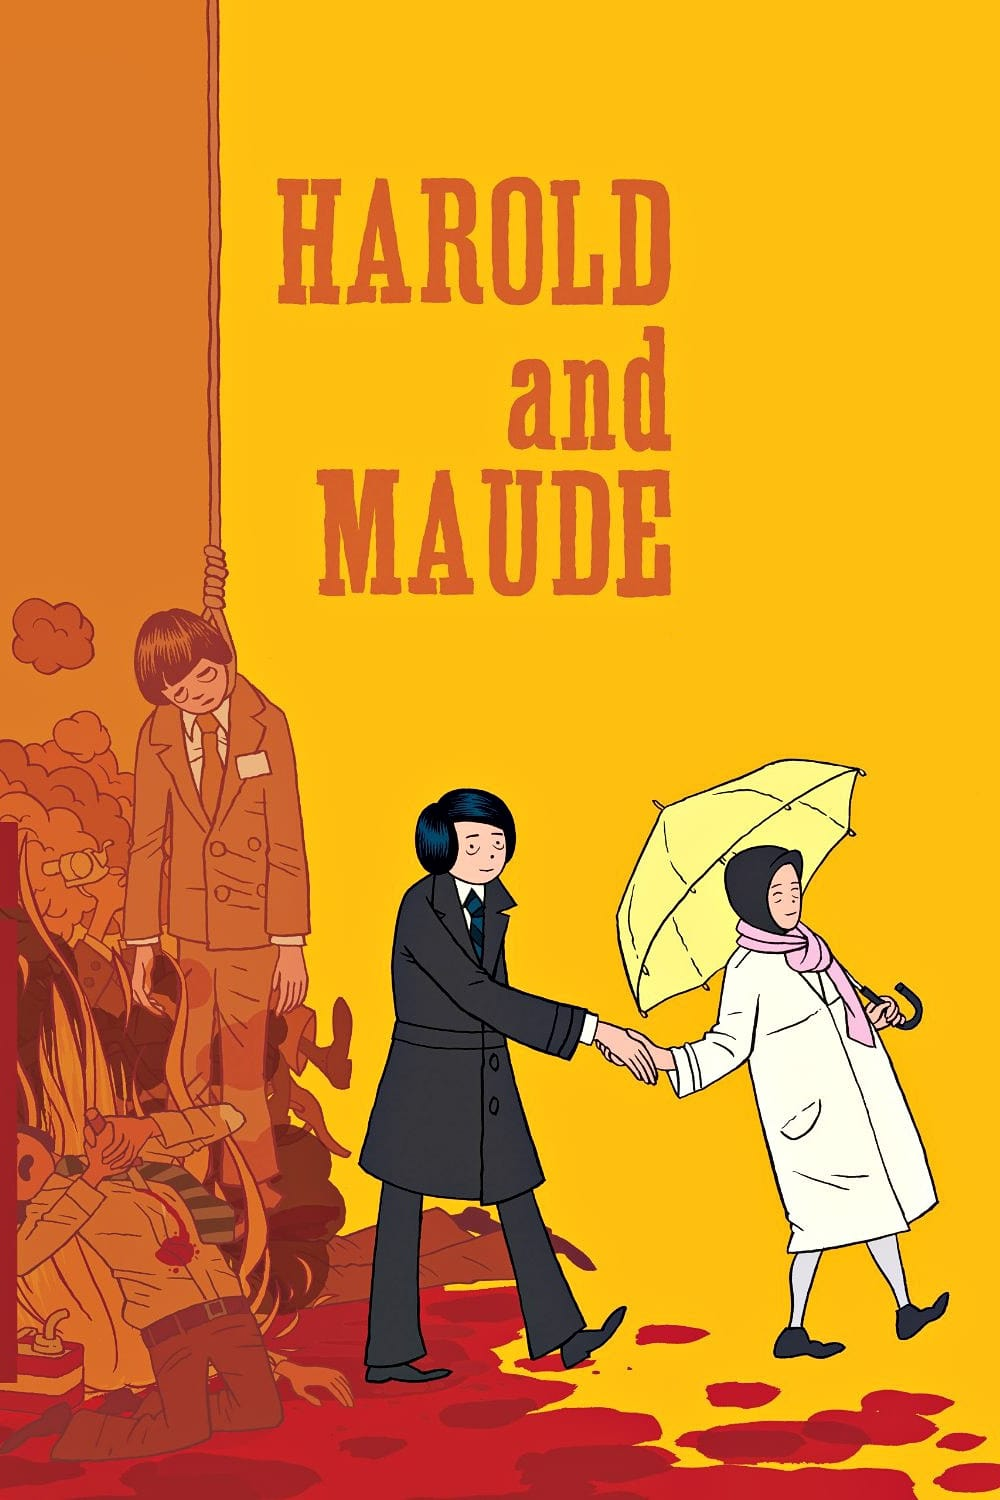 harold and maude essay Harold enjoys faking suicide to nbsp harold and maude an analysis essay — essays research papers – a cult classic essay — films is a cult classic from the 1970 39s that defined film making today.